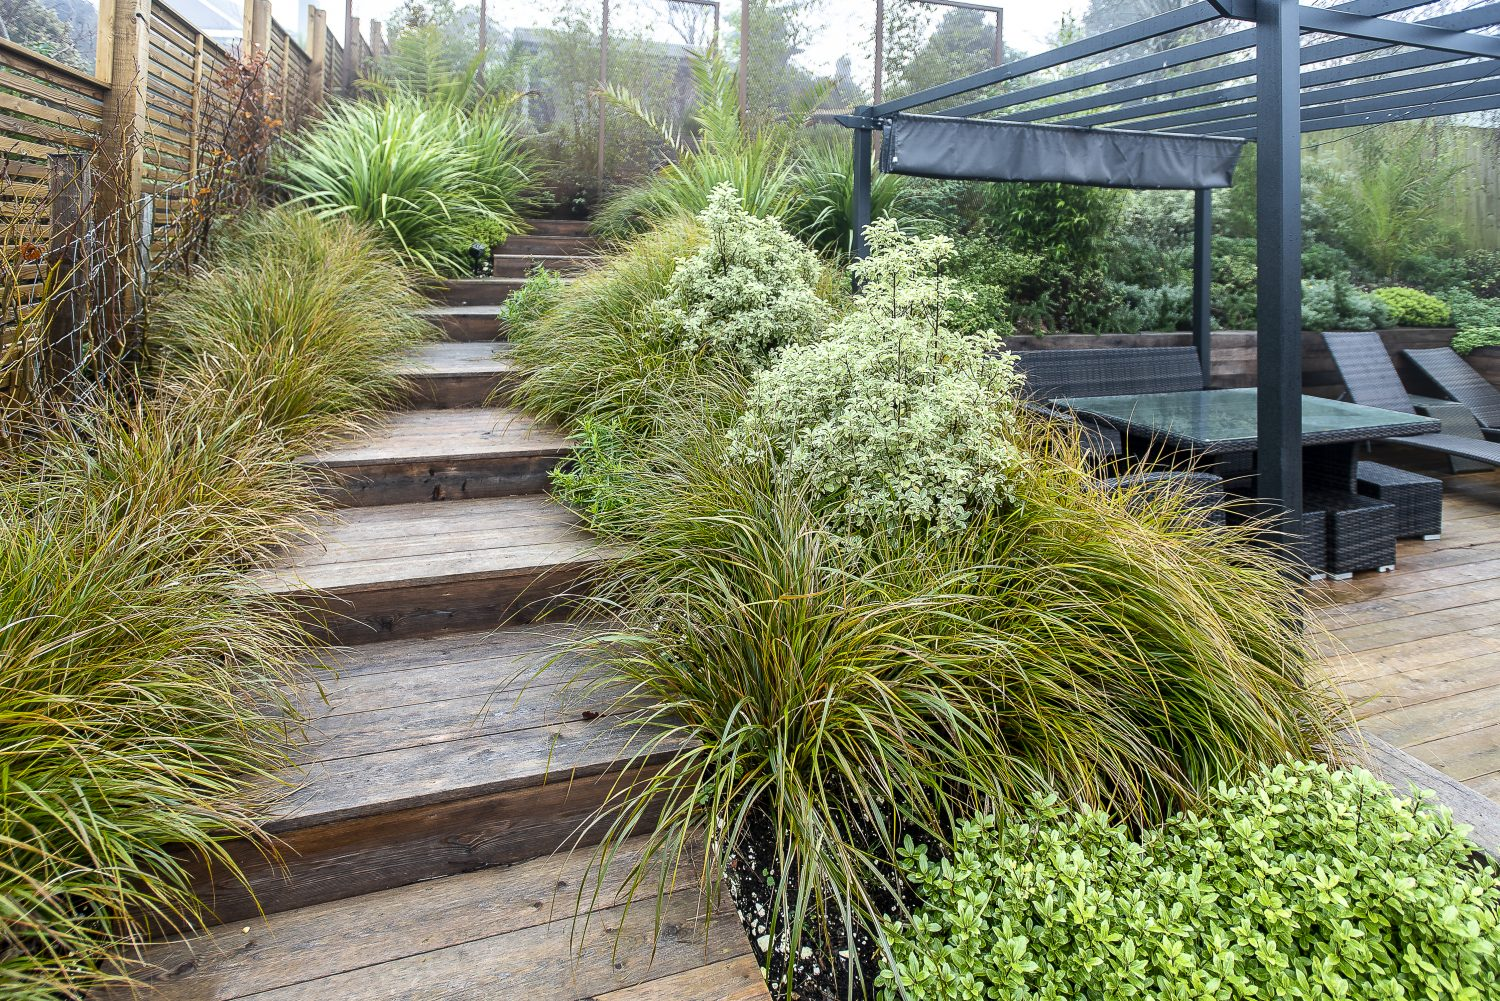 Evergreen planting schemes and wide terraces designed by Tina Vallis lead up towards the summerhouse